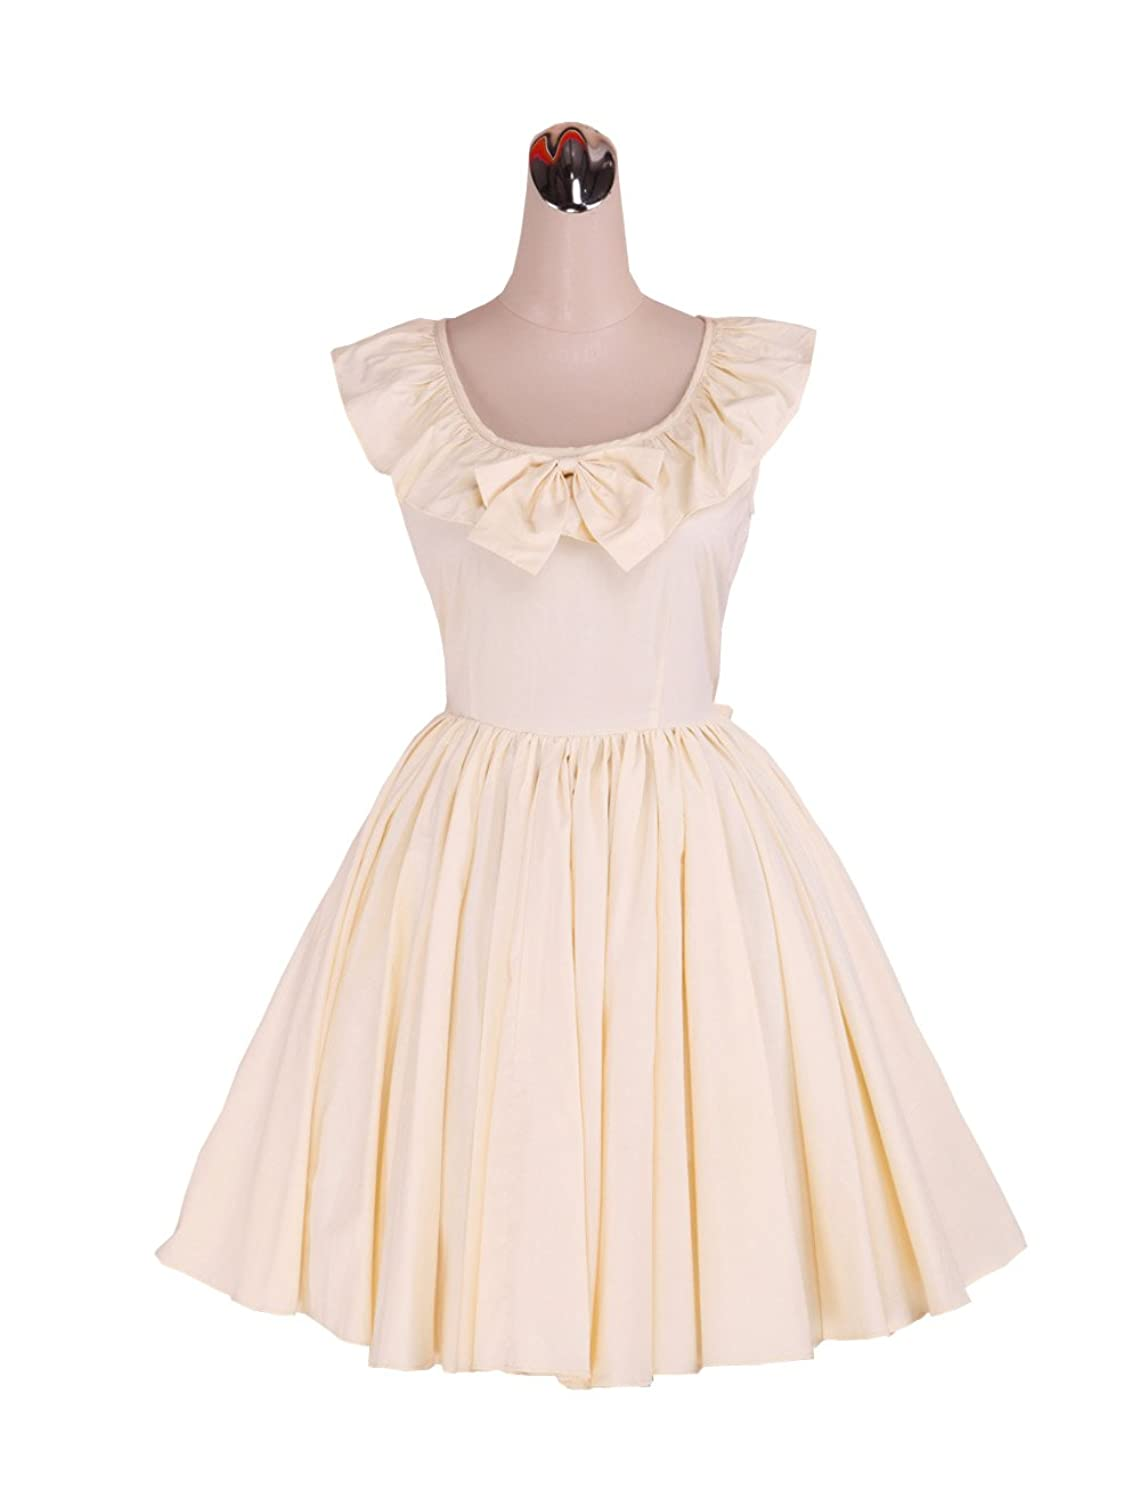 Vintage Style Children's Clothing: Girls, Boys, Baby, Toddler antaina Light Yellow Cotton Bow Ruffle Sweet Victorian Lolita Cosplay Dress $58.99 AT vintagedancer.com